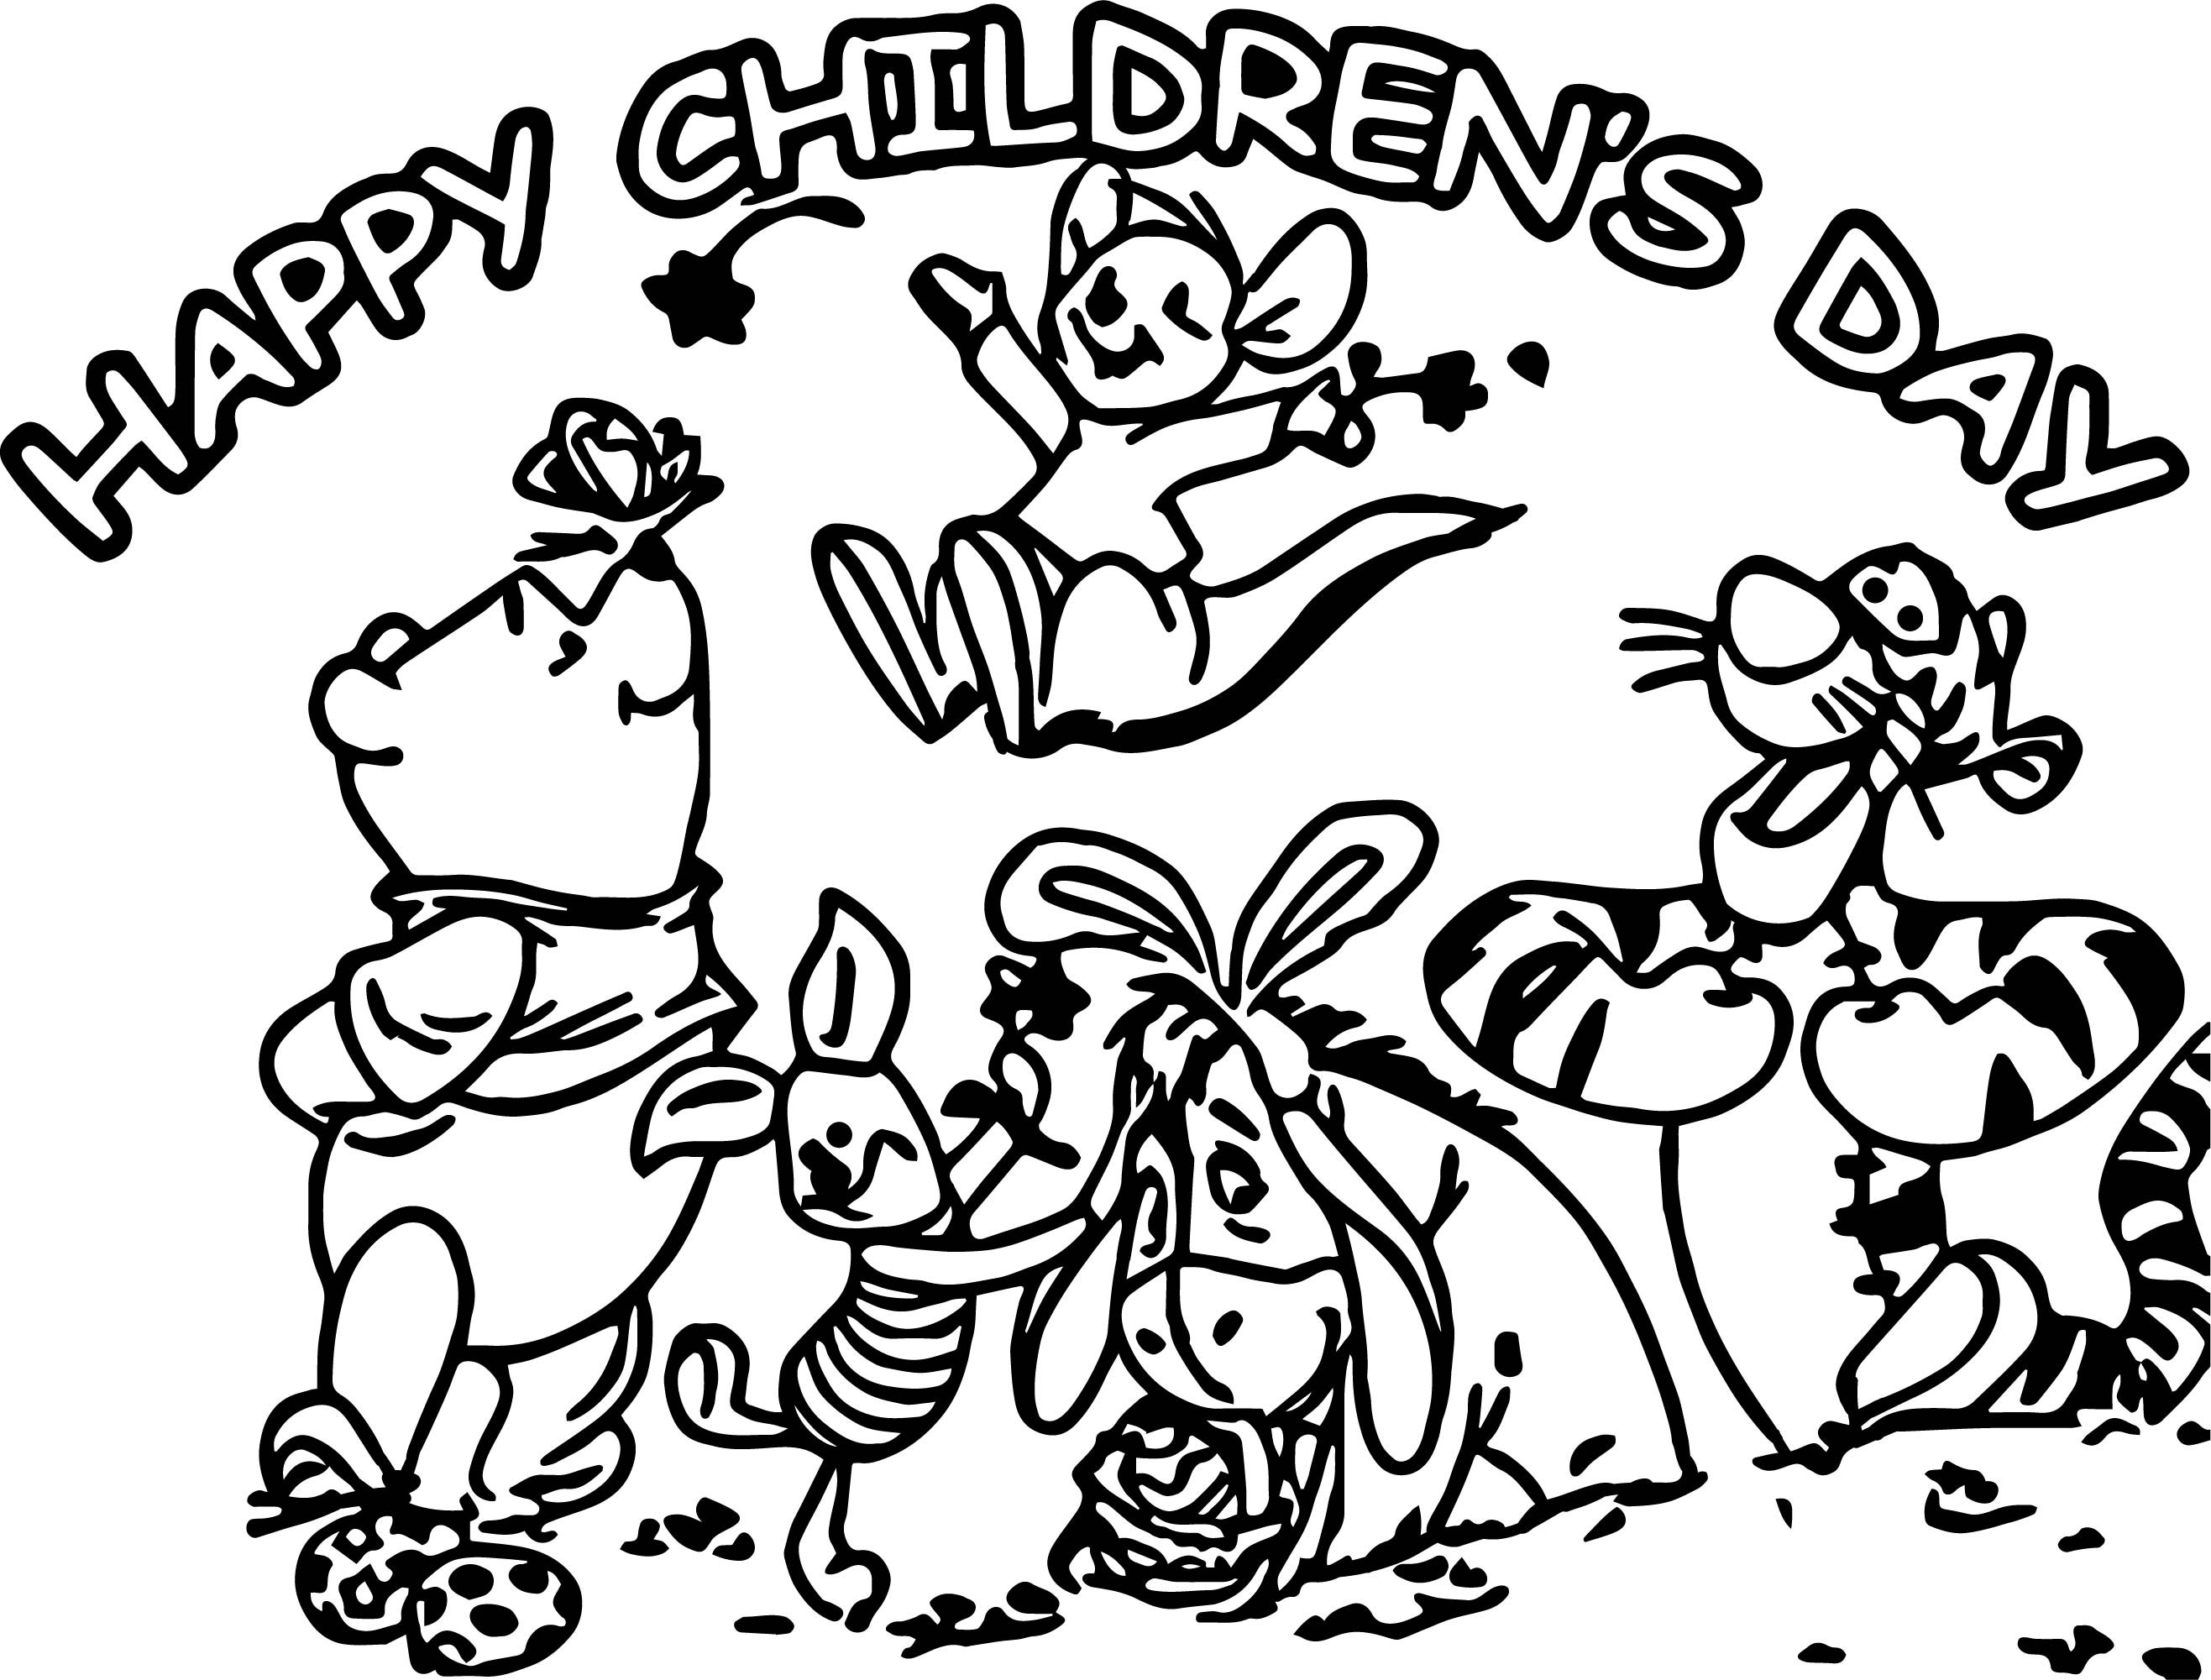 2633x2001 Childrens Animal Coloring Pages Unique Happy Day